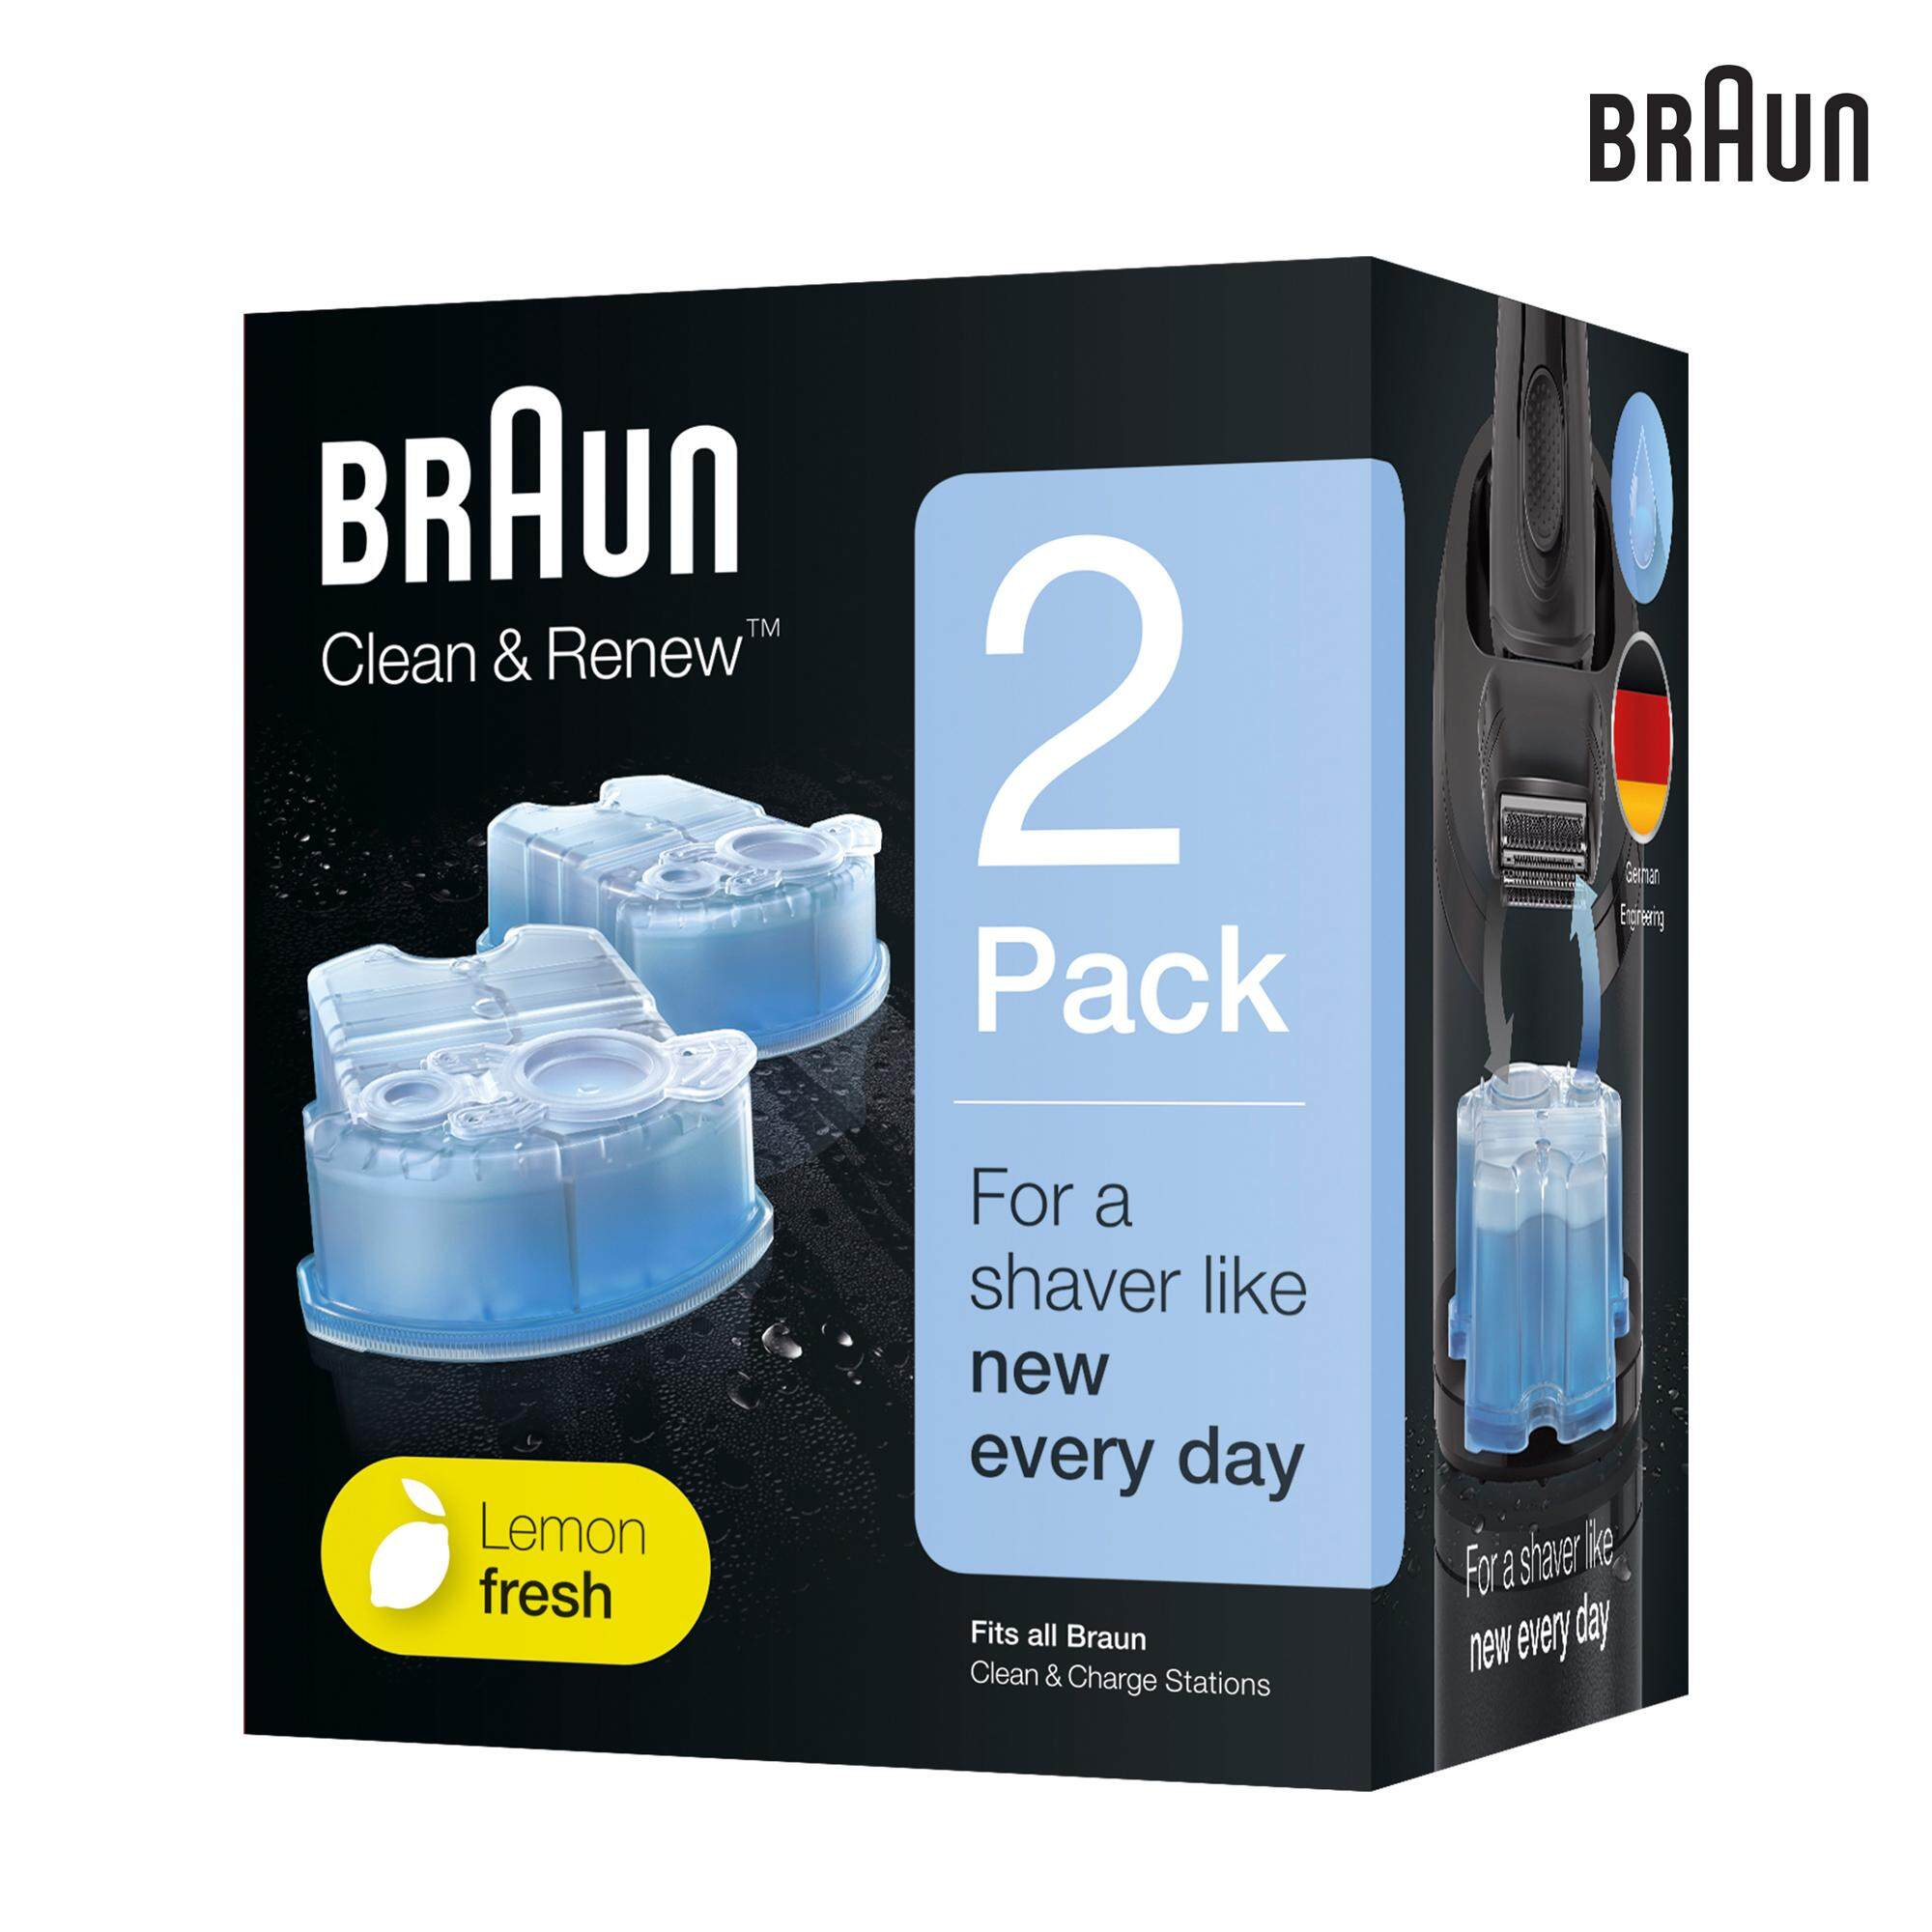 Braun Clean and Renew CCR 2 Refills